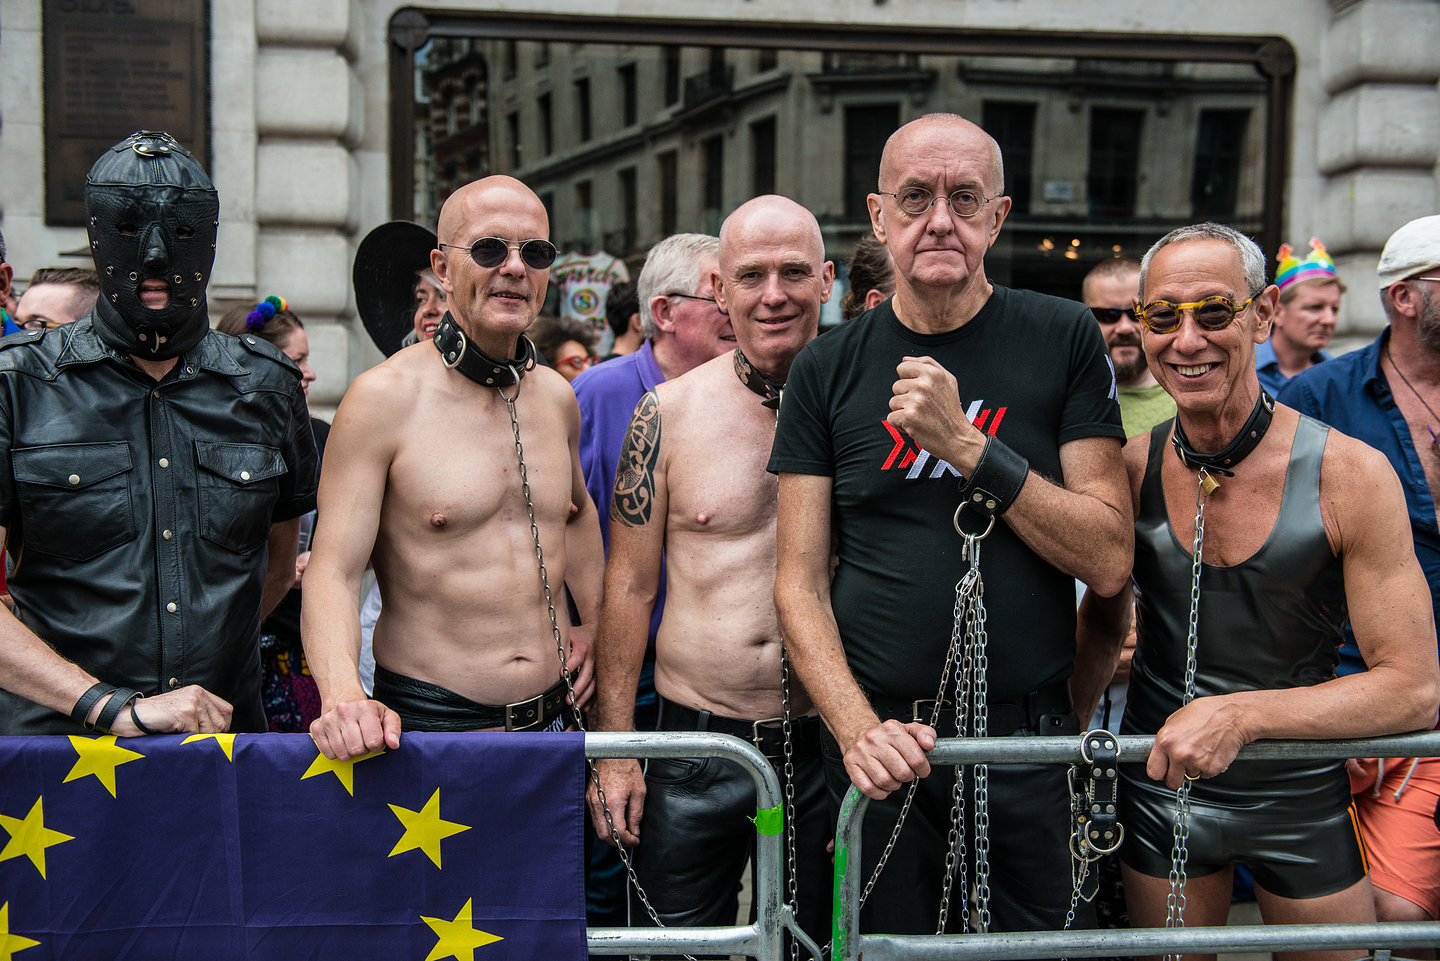 Pride in London 2017